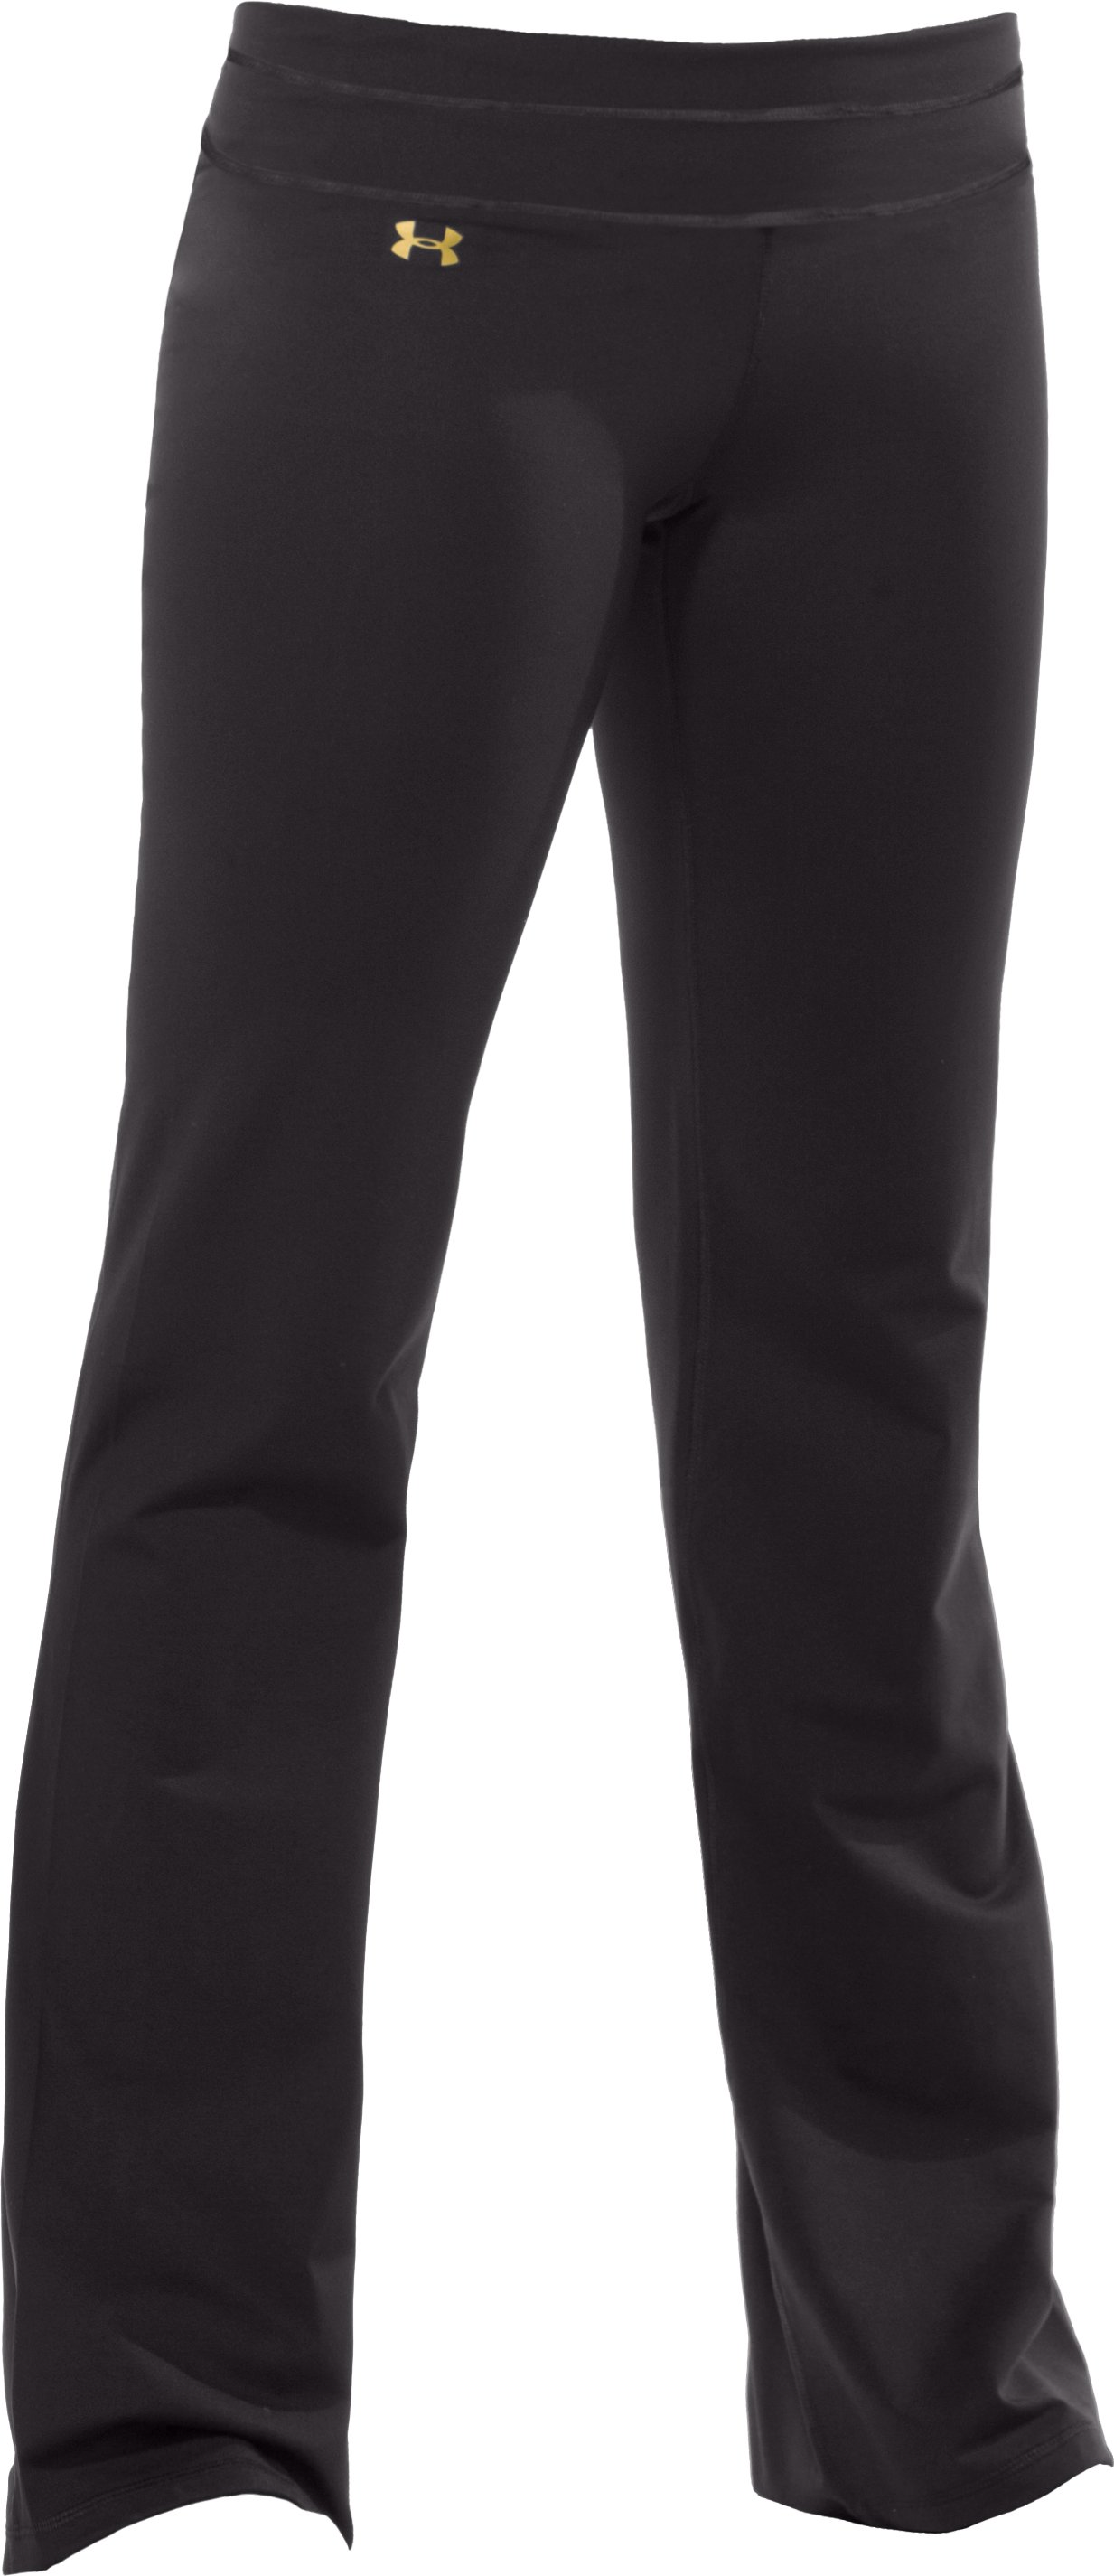 "Women's UA Perfect Pant - 33.5"", Charcoal, undefined"